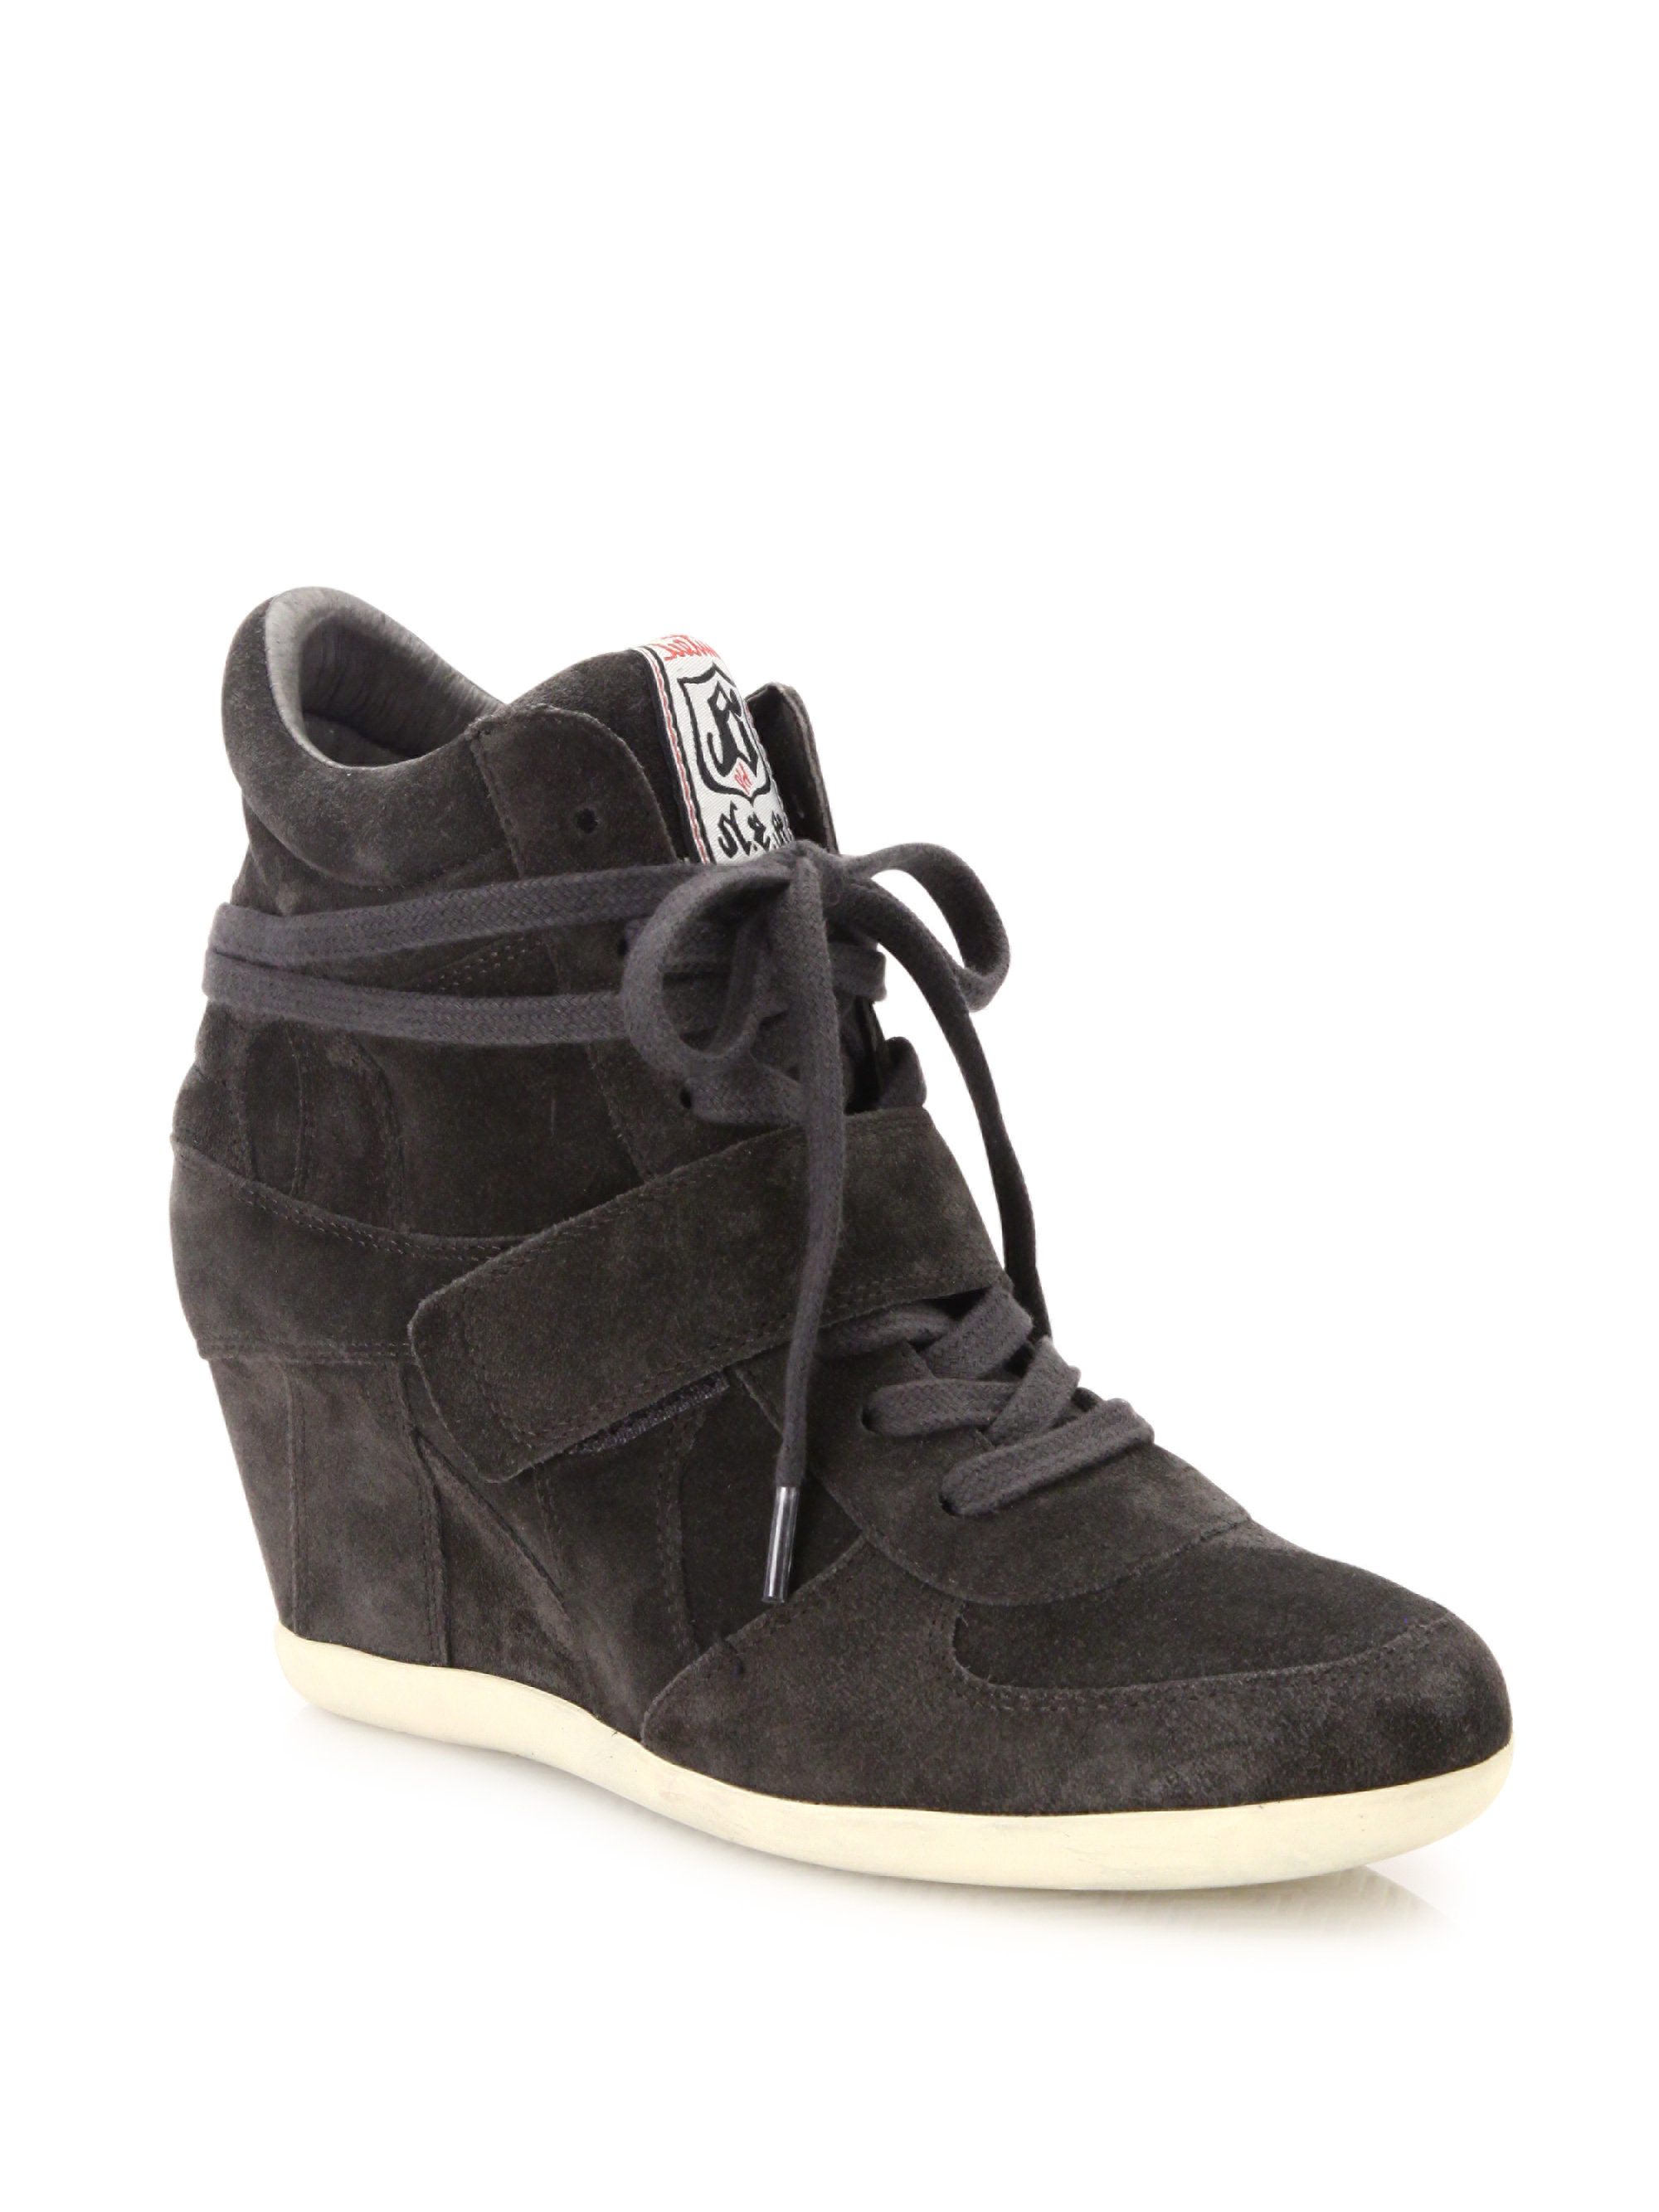 ash bowie suede high top wedge sneakers in black lyst. Black Bedroom Furniture Sets. Home Design Ideas